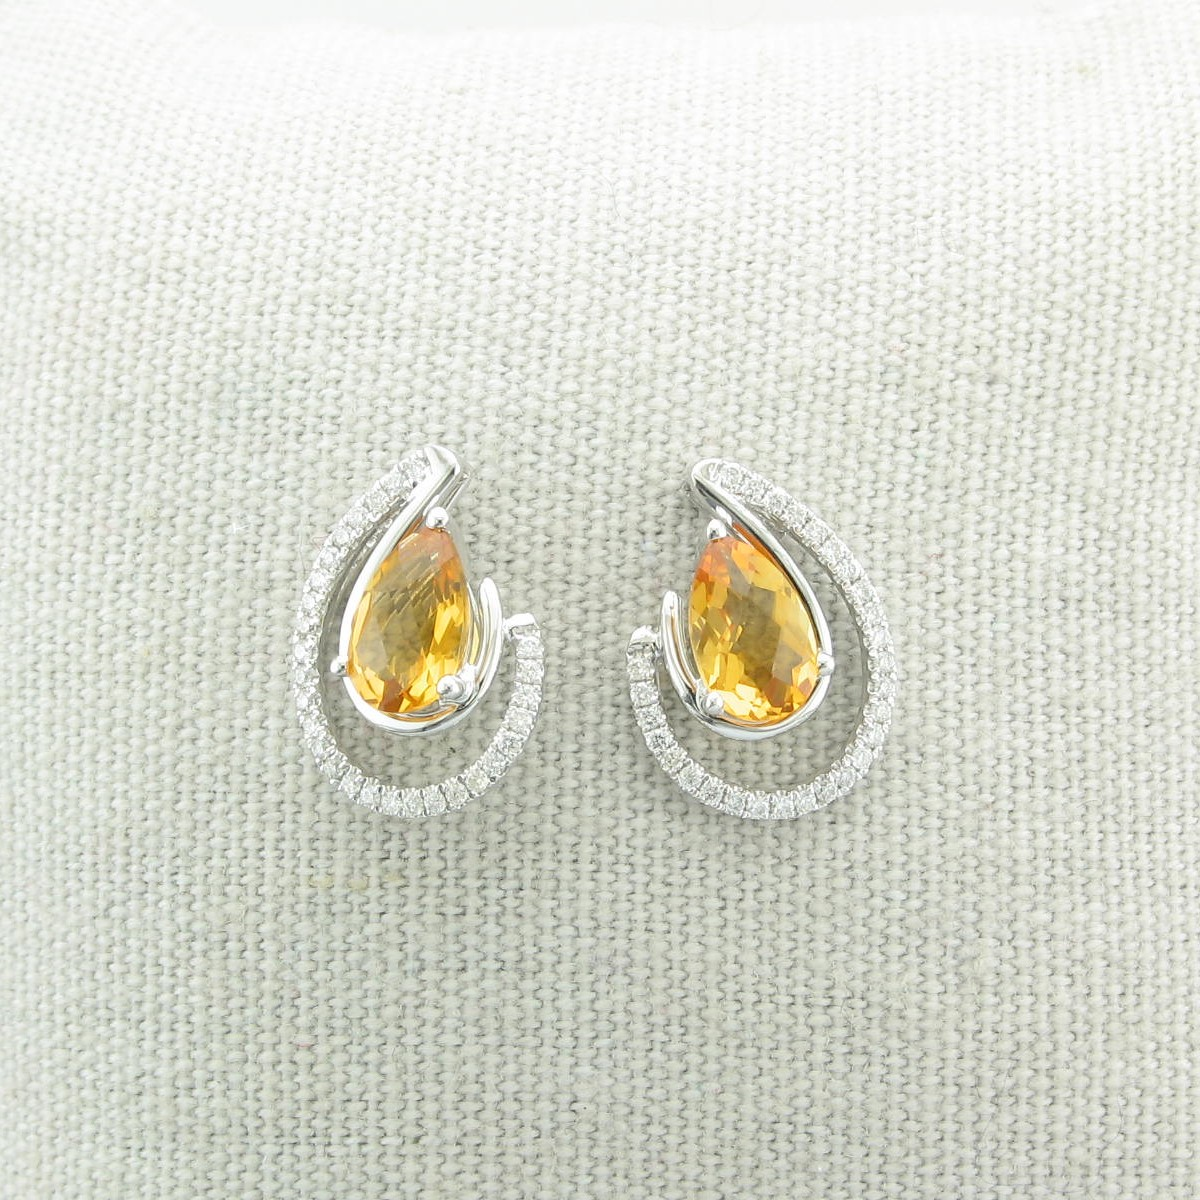 1.45tcw Citrine and Diamond Earrings set in 14k White Gold